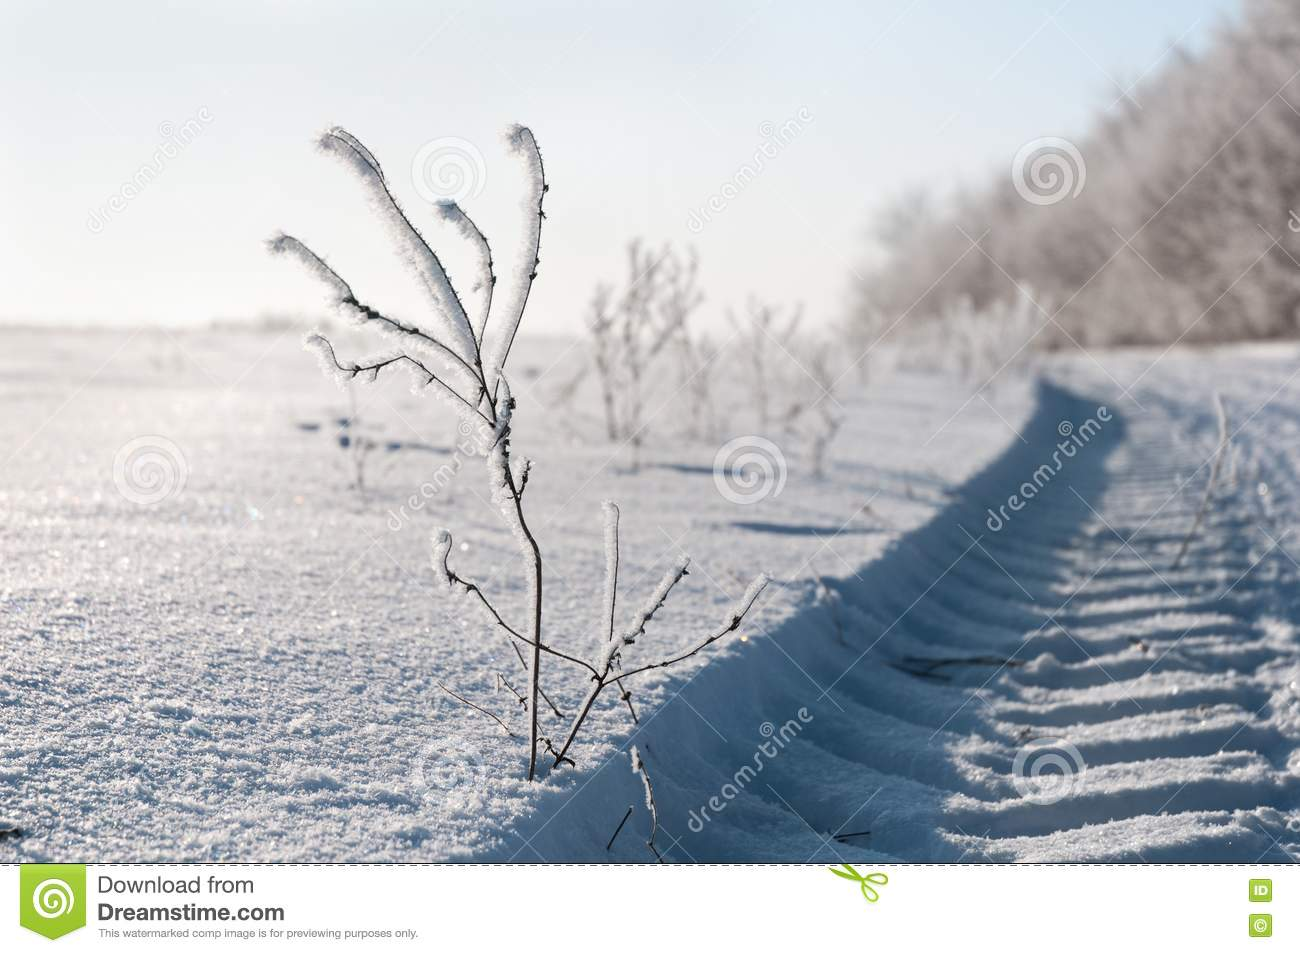 Frozen branch stock image. Image of december, nature ...